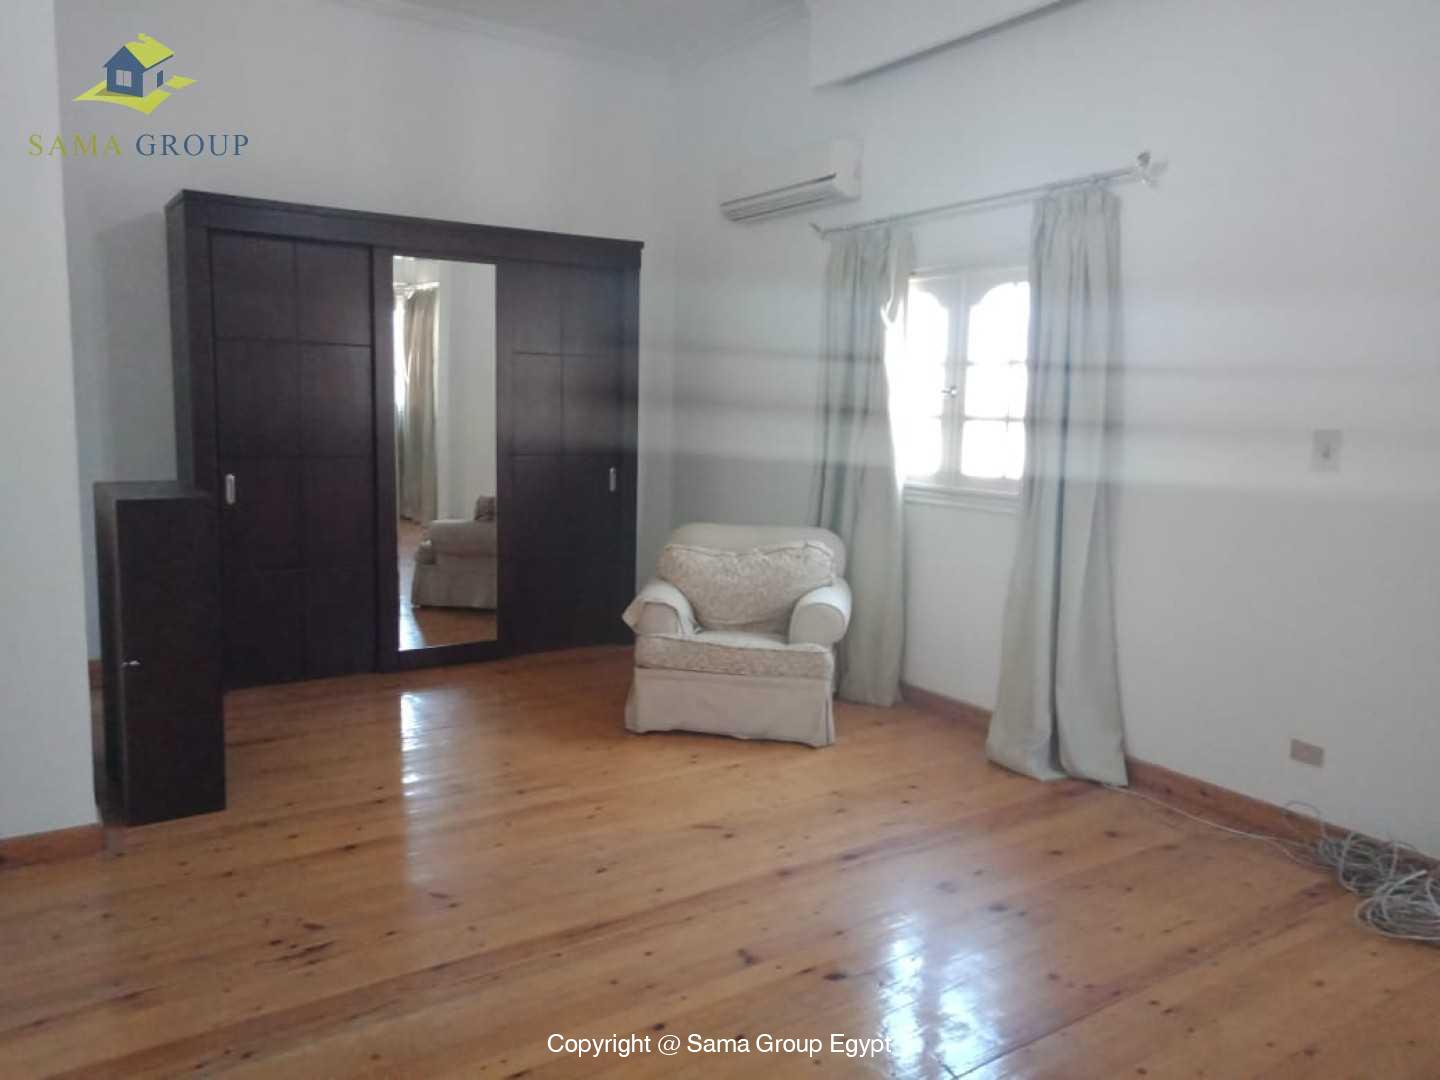 Penthouse With Pool For Rent In Maadi Degla,Modern Furnished,Penthouse NO #2